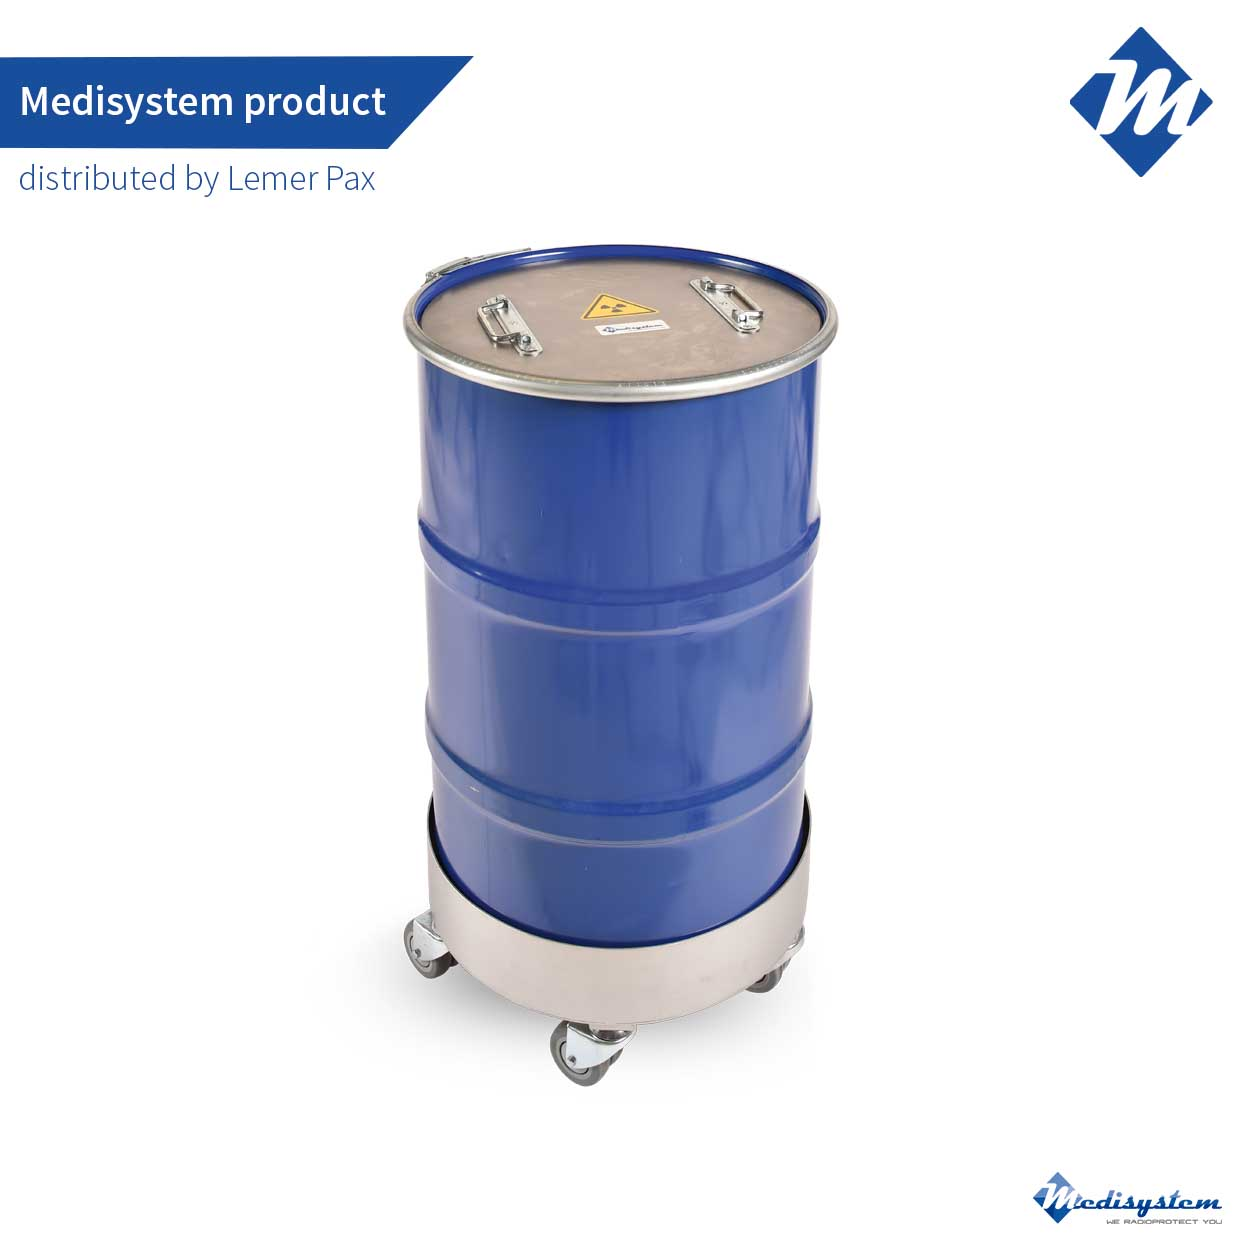 shielded drum for storage - low and medium energy